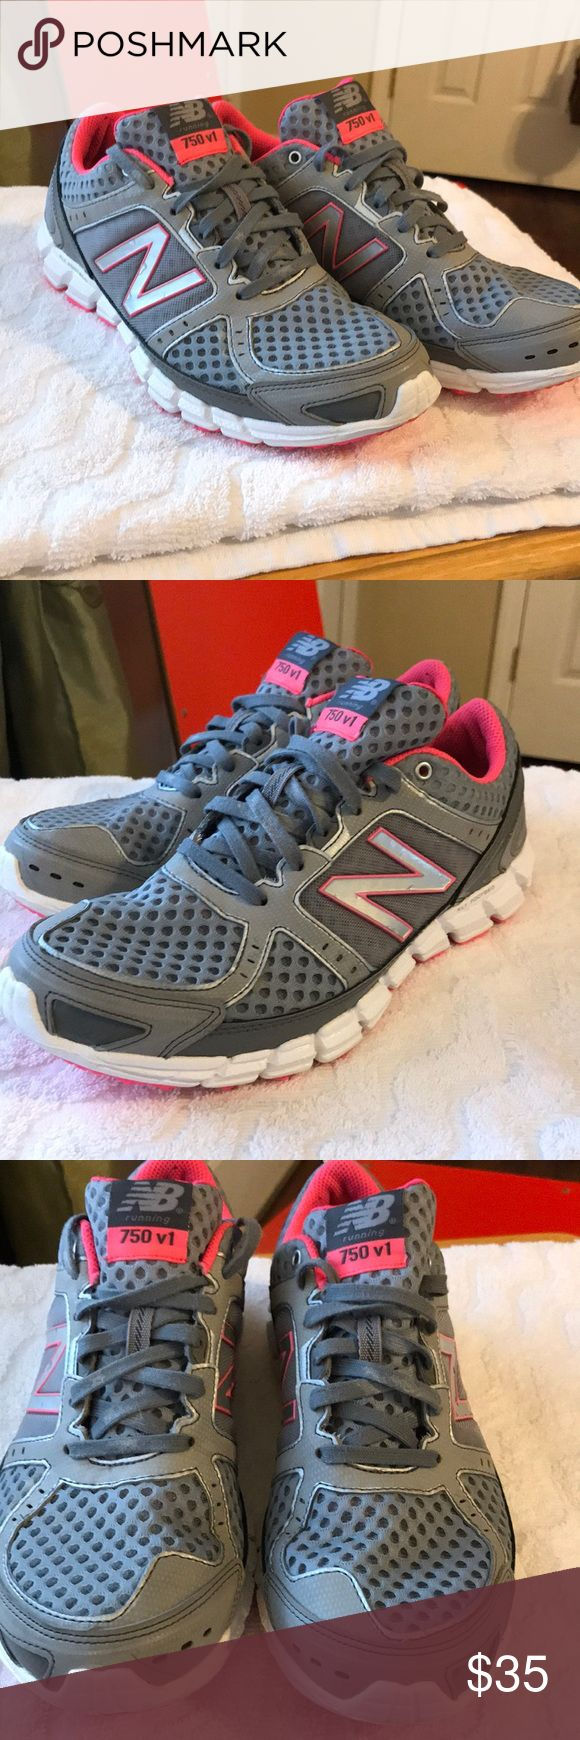 New balance ladies 750 V1 size 7 1/2 Ladies new balance 750 the one in size 7 1/2. These ladies new balance shoes are in excellent condition only worn 1 or 2 times only. Very lightweight super comfortable. No issues with the shoes at all like new next to nowhere on the bottoms. Colors are gray silver and fluorescent pink. New Balance Shoes Athletic Shoes